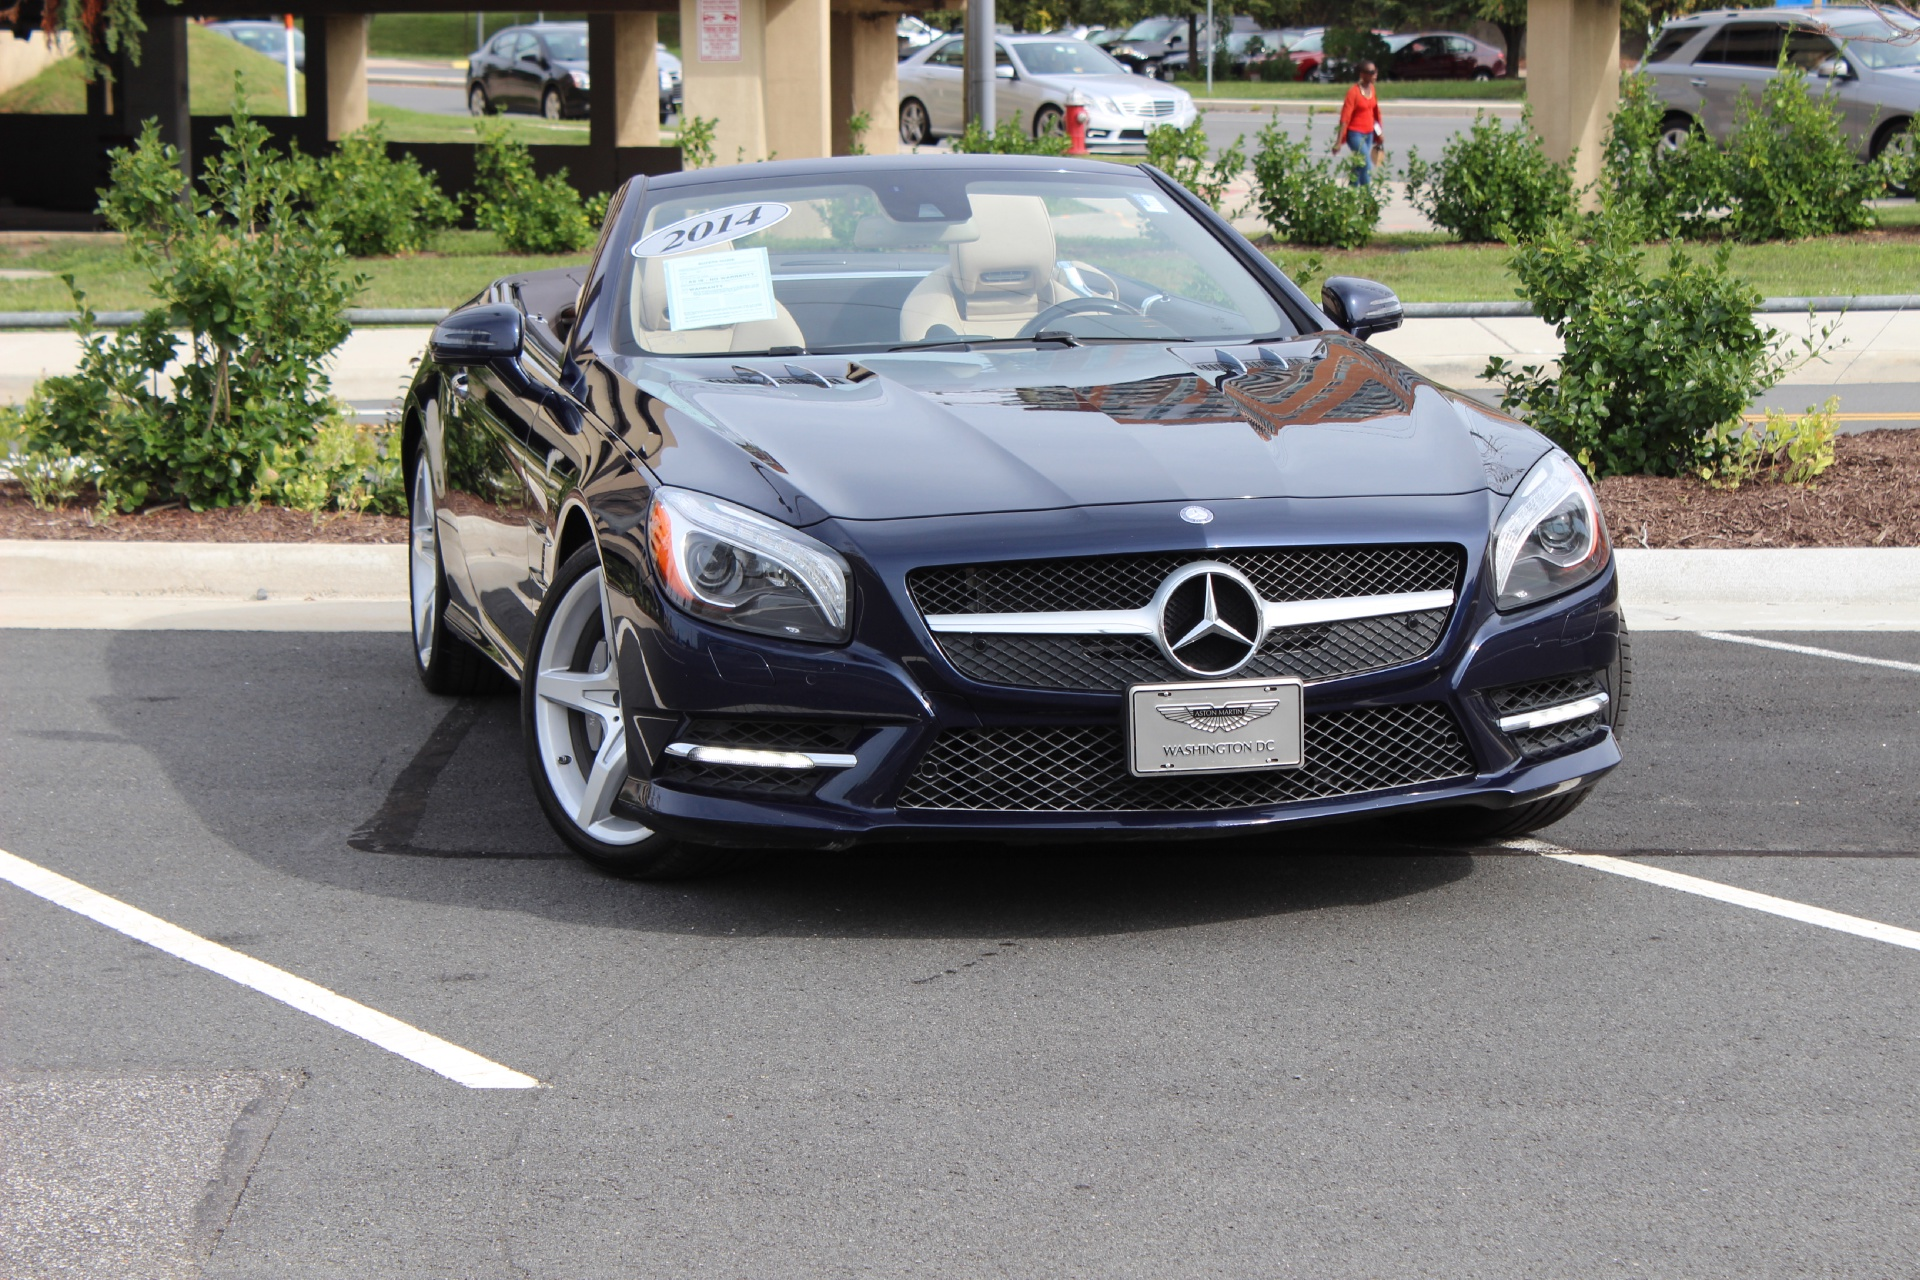 2014 mercedes benz sl class sl550 stock p024367 for sale for Mercedes benz tysons service